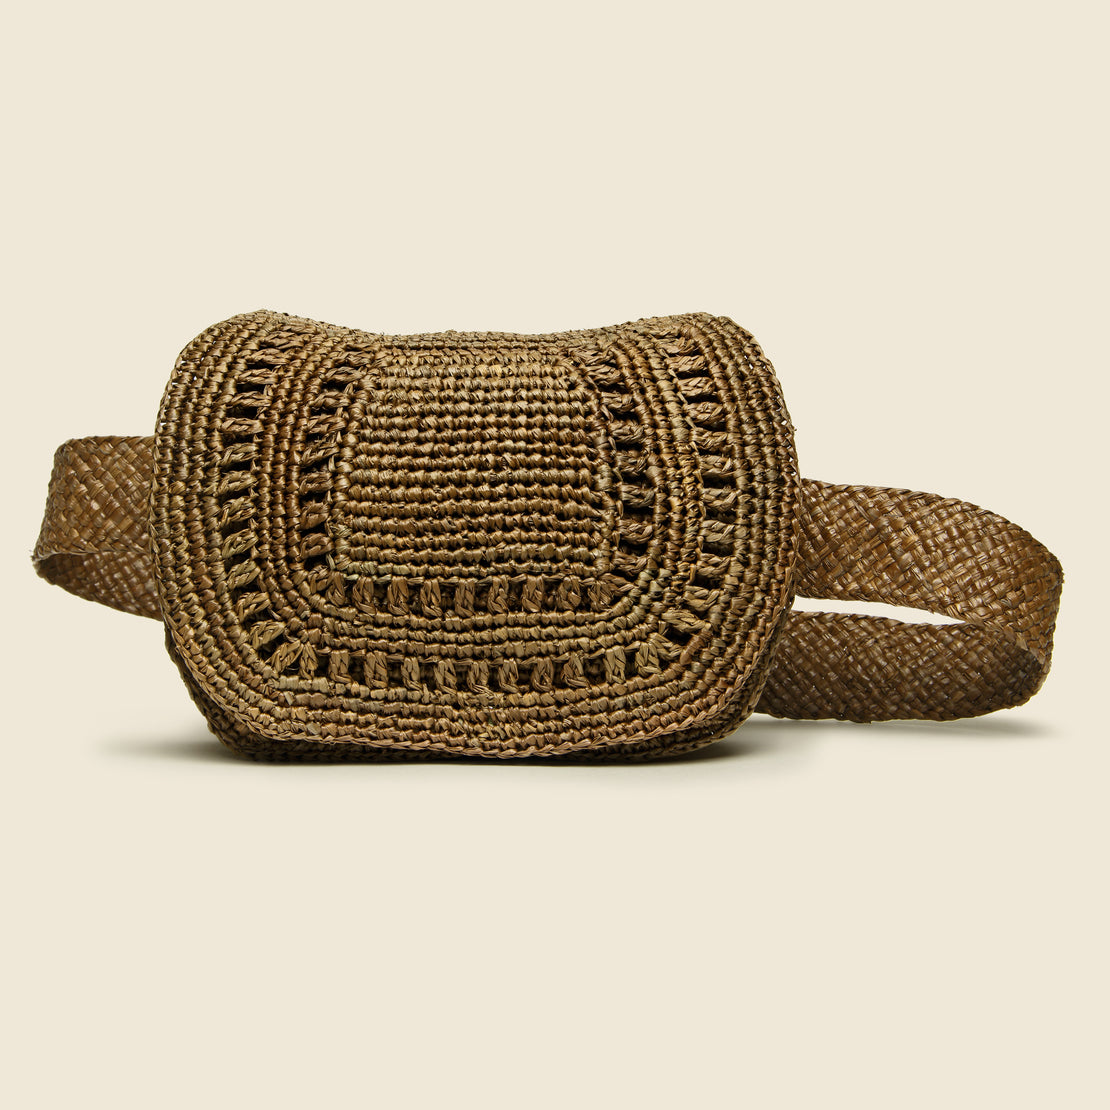 Maison NH Paris Alix Raffia Hip Bag - Sucre Brun